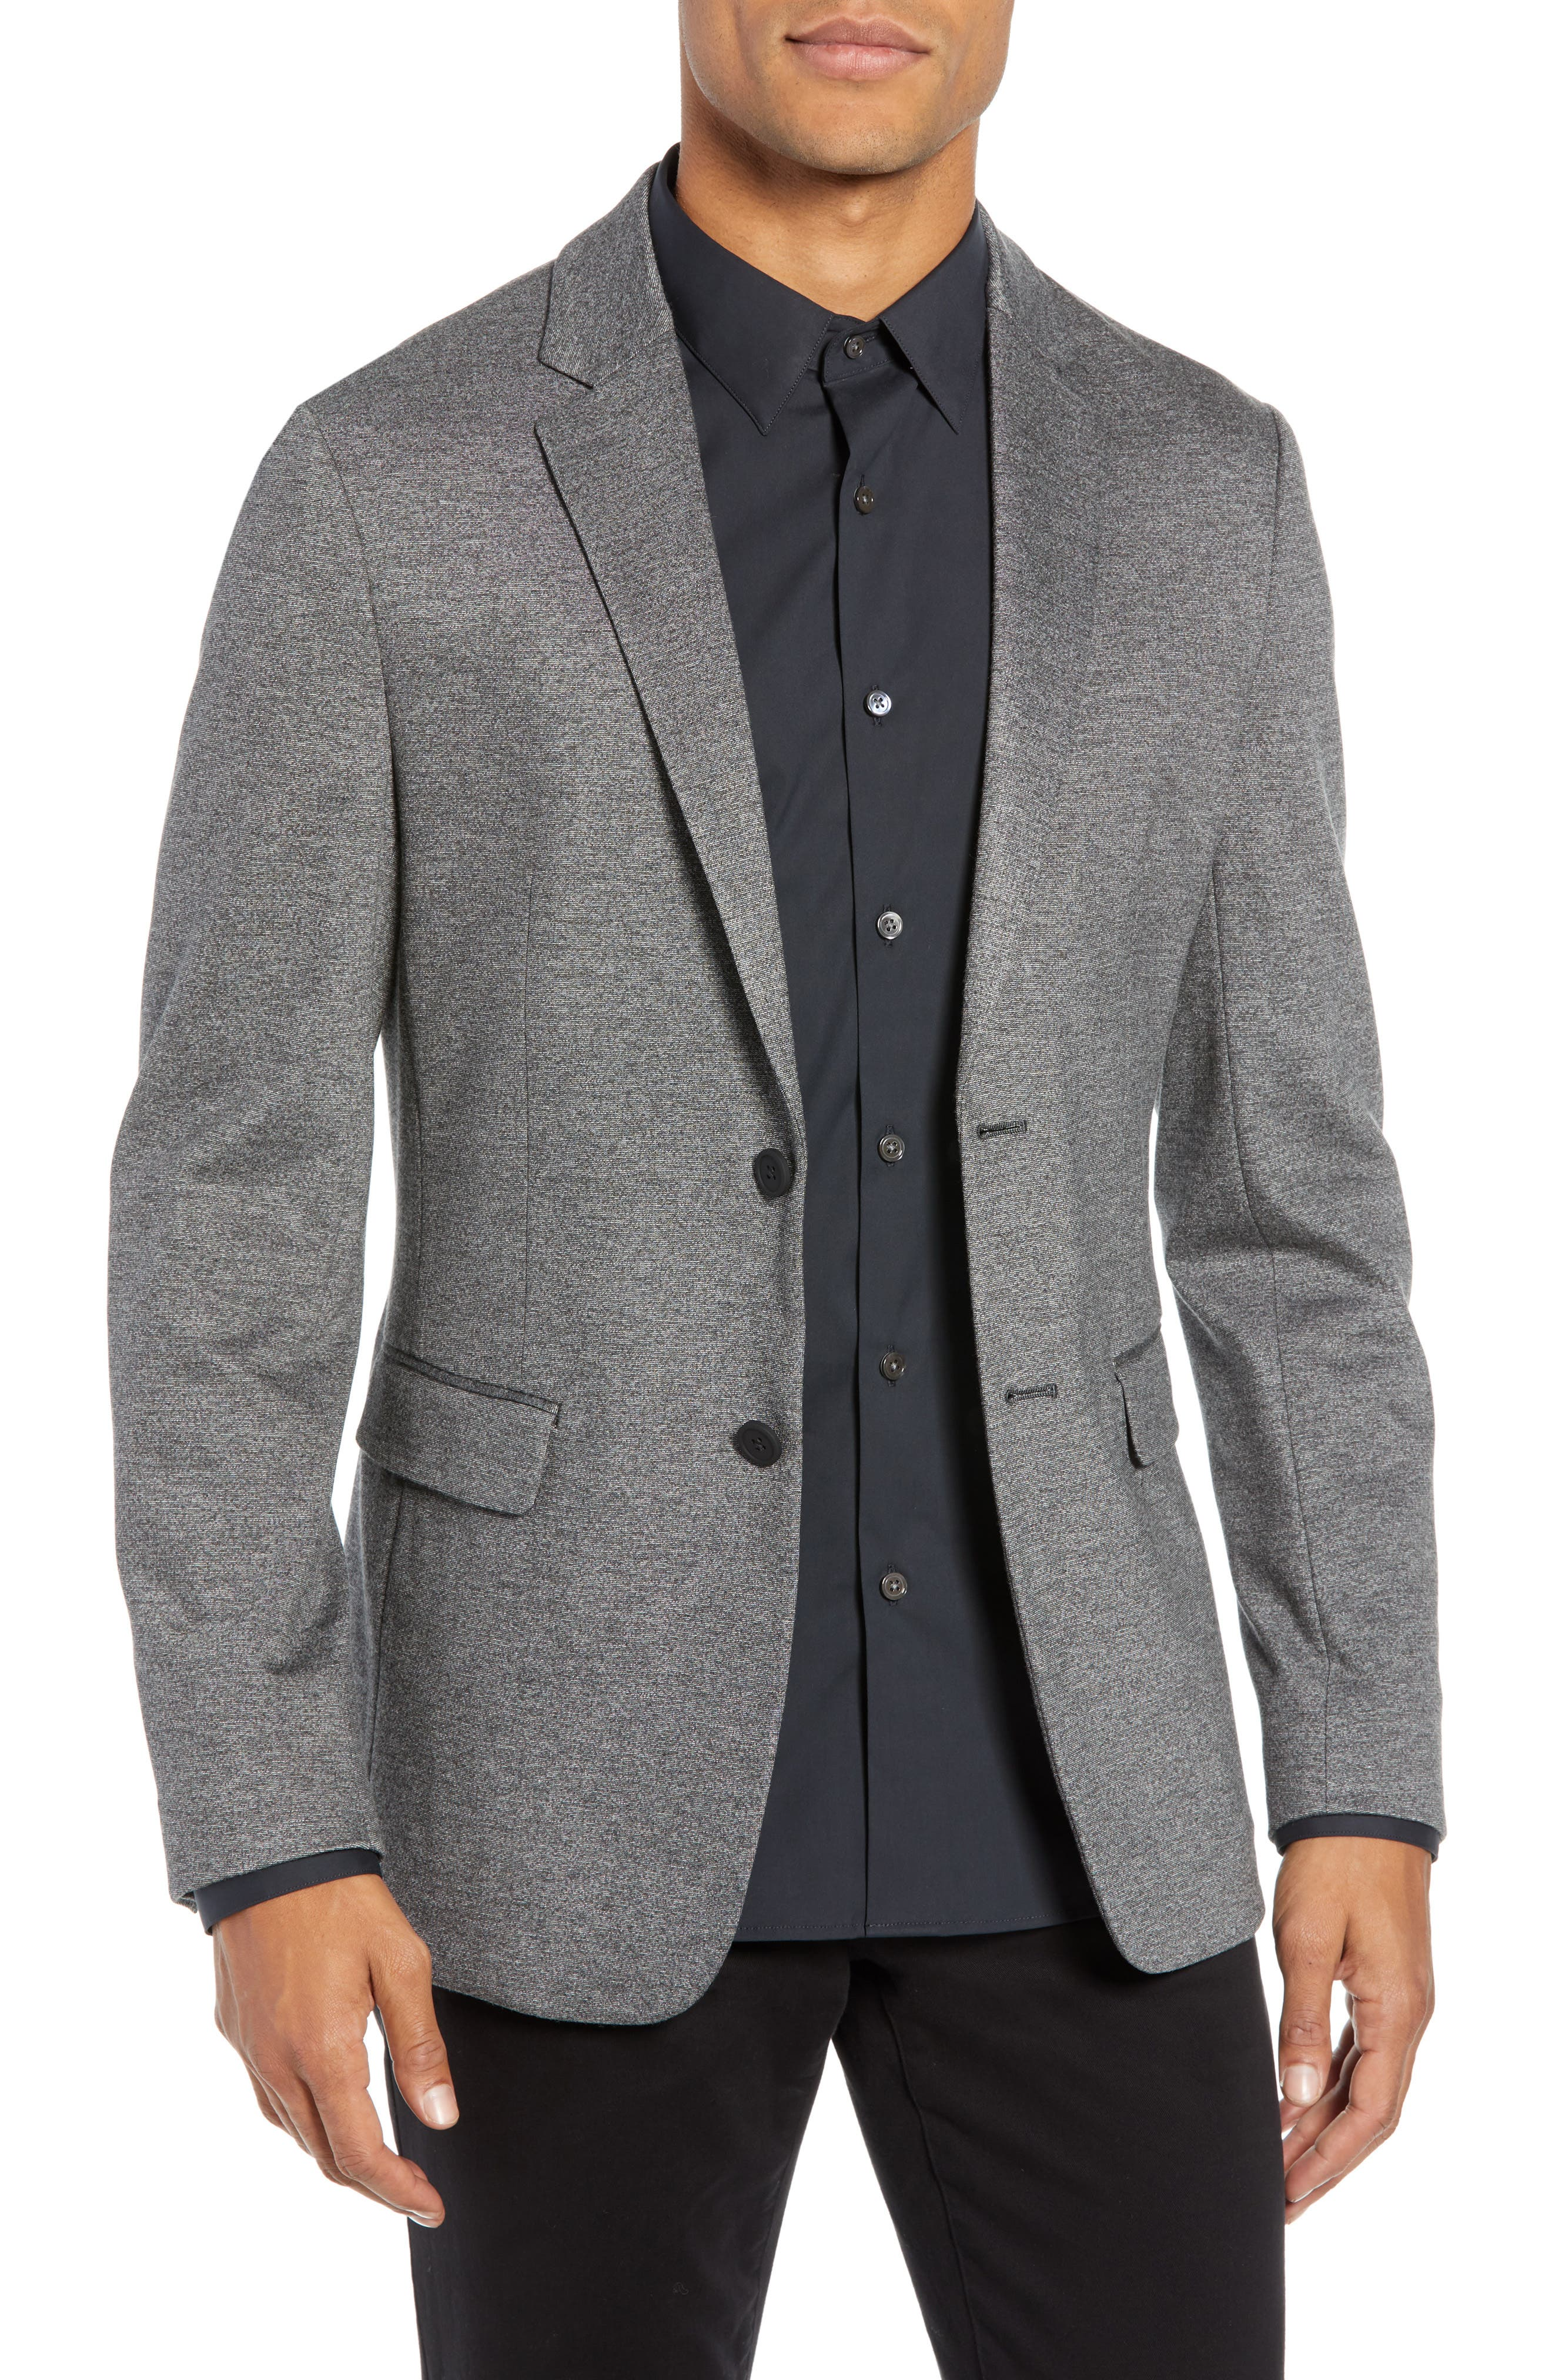 THEORY Clinton Marled Ponte Sport Coat, Main, color, 004